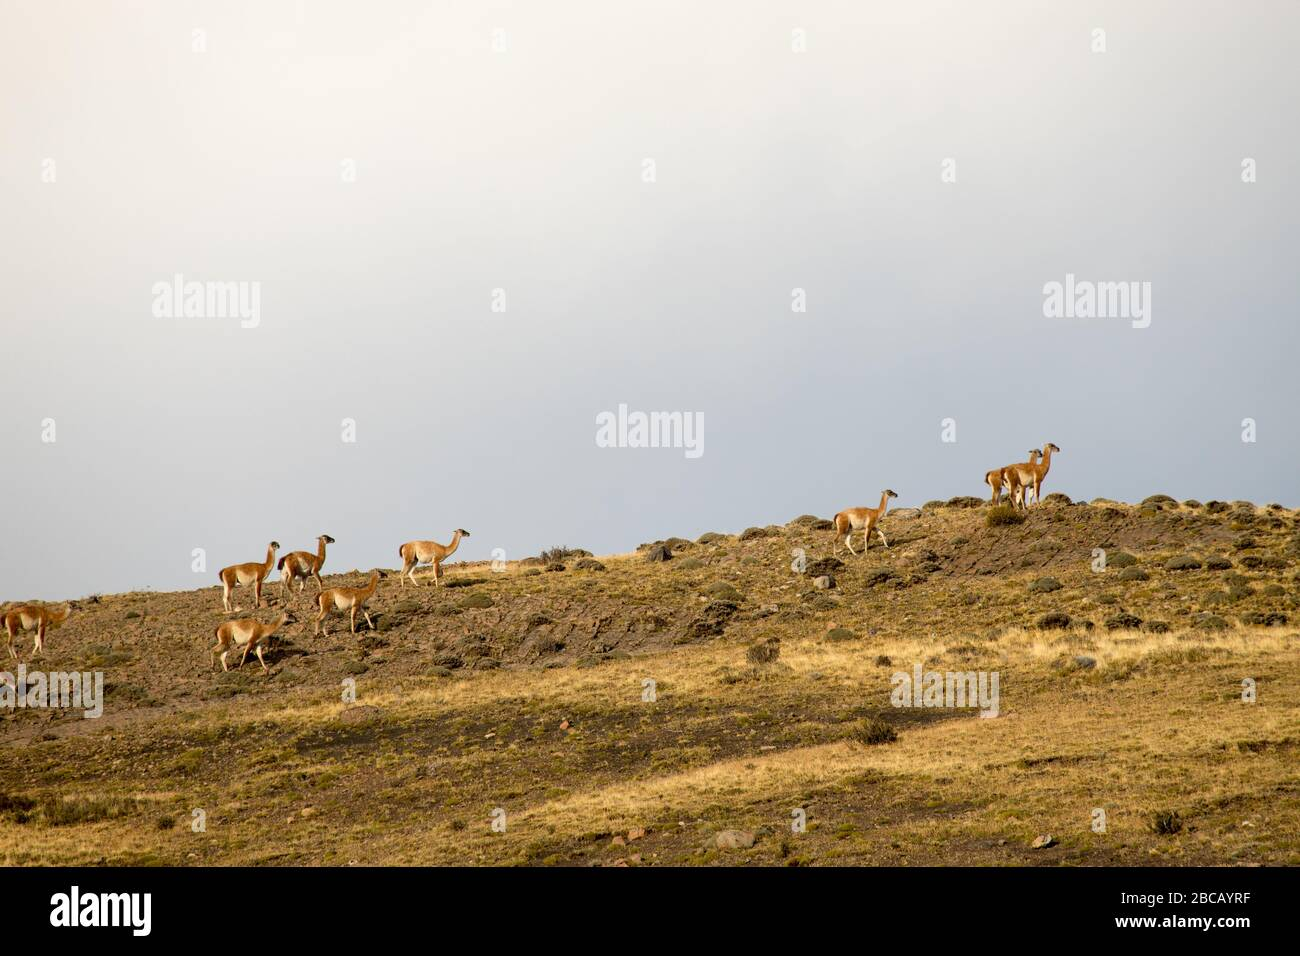 Guanacos in the landscape of the Torres del Paine mountains, Torres del Paine National Park, Chile Stock Photo